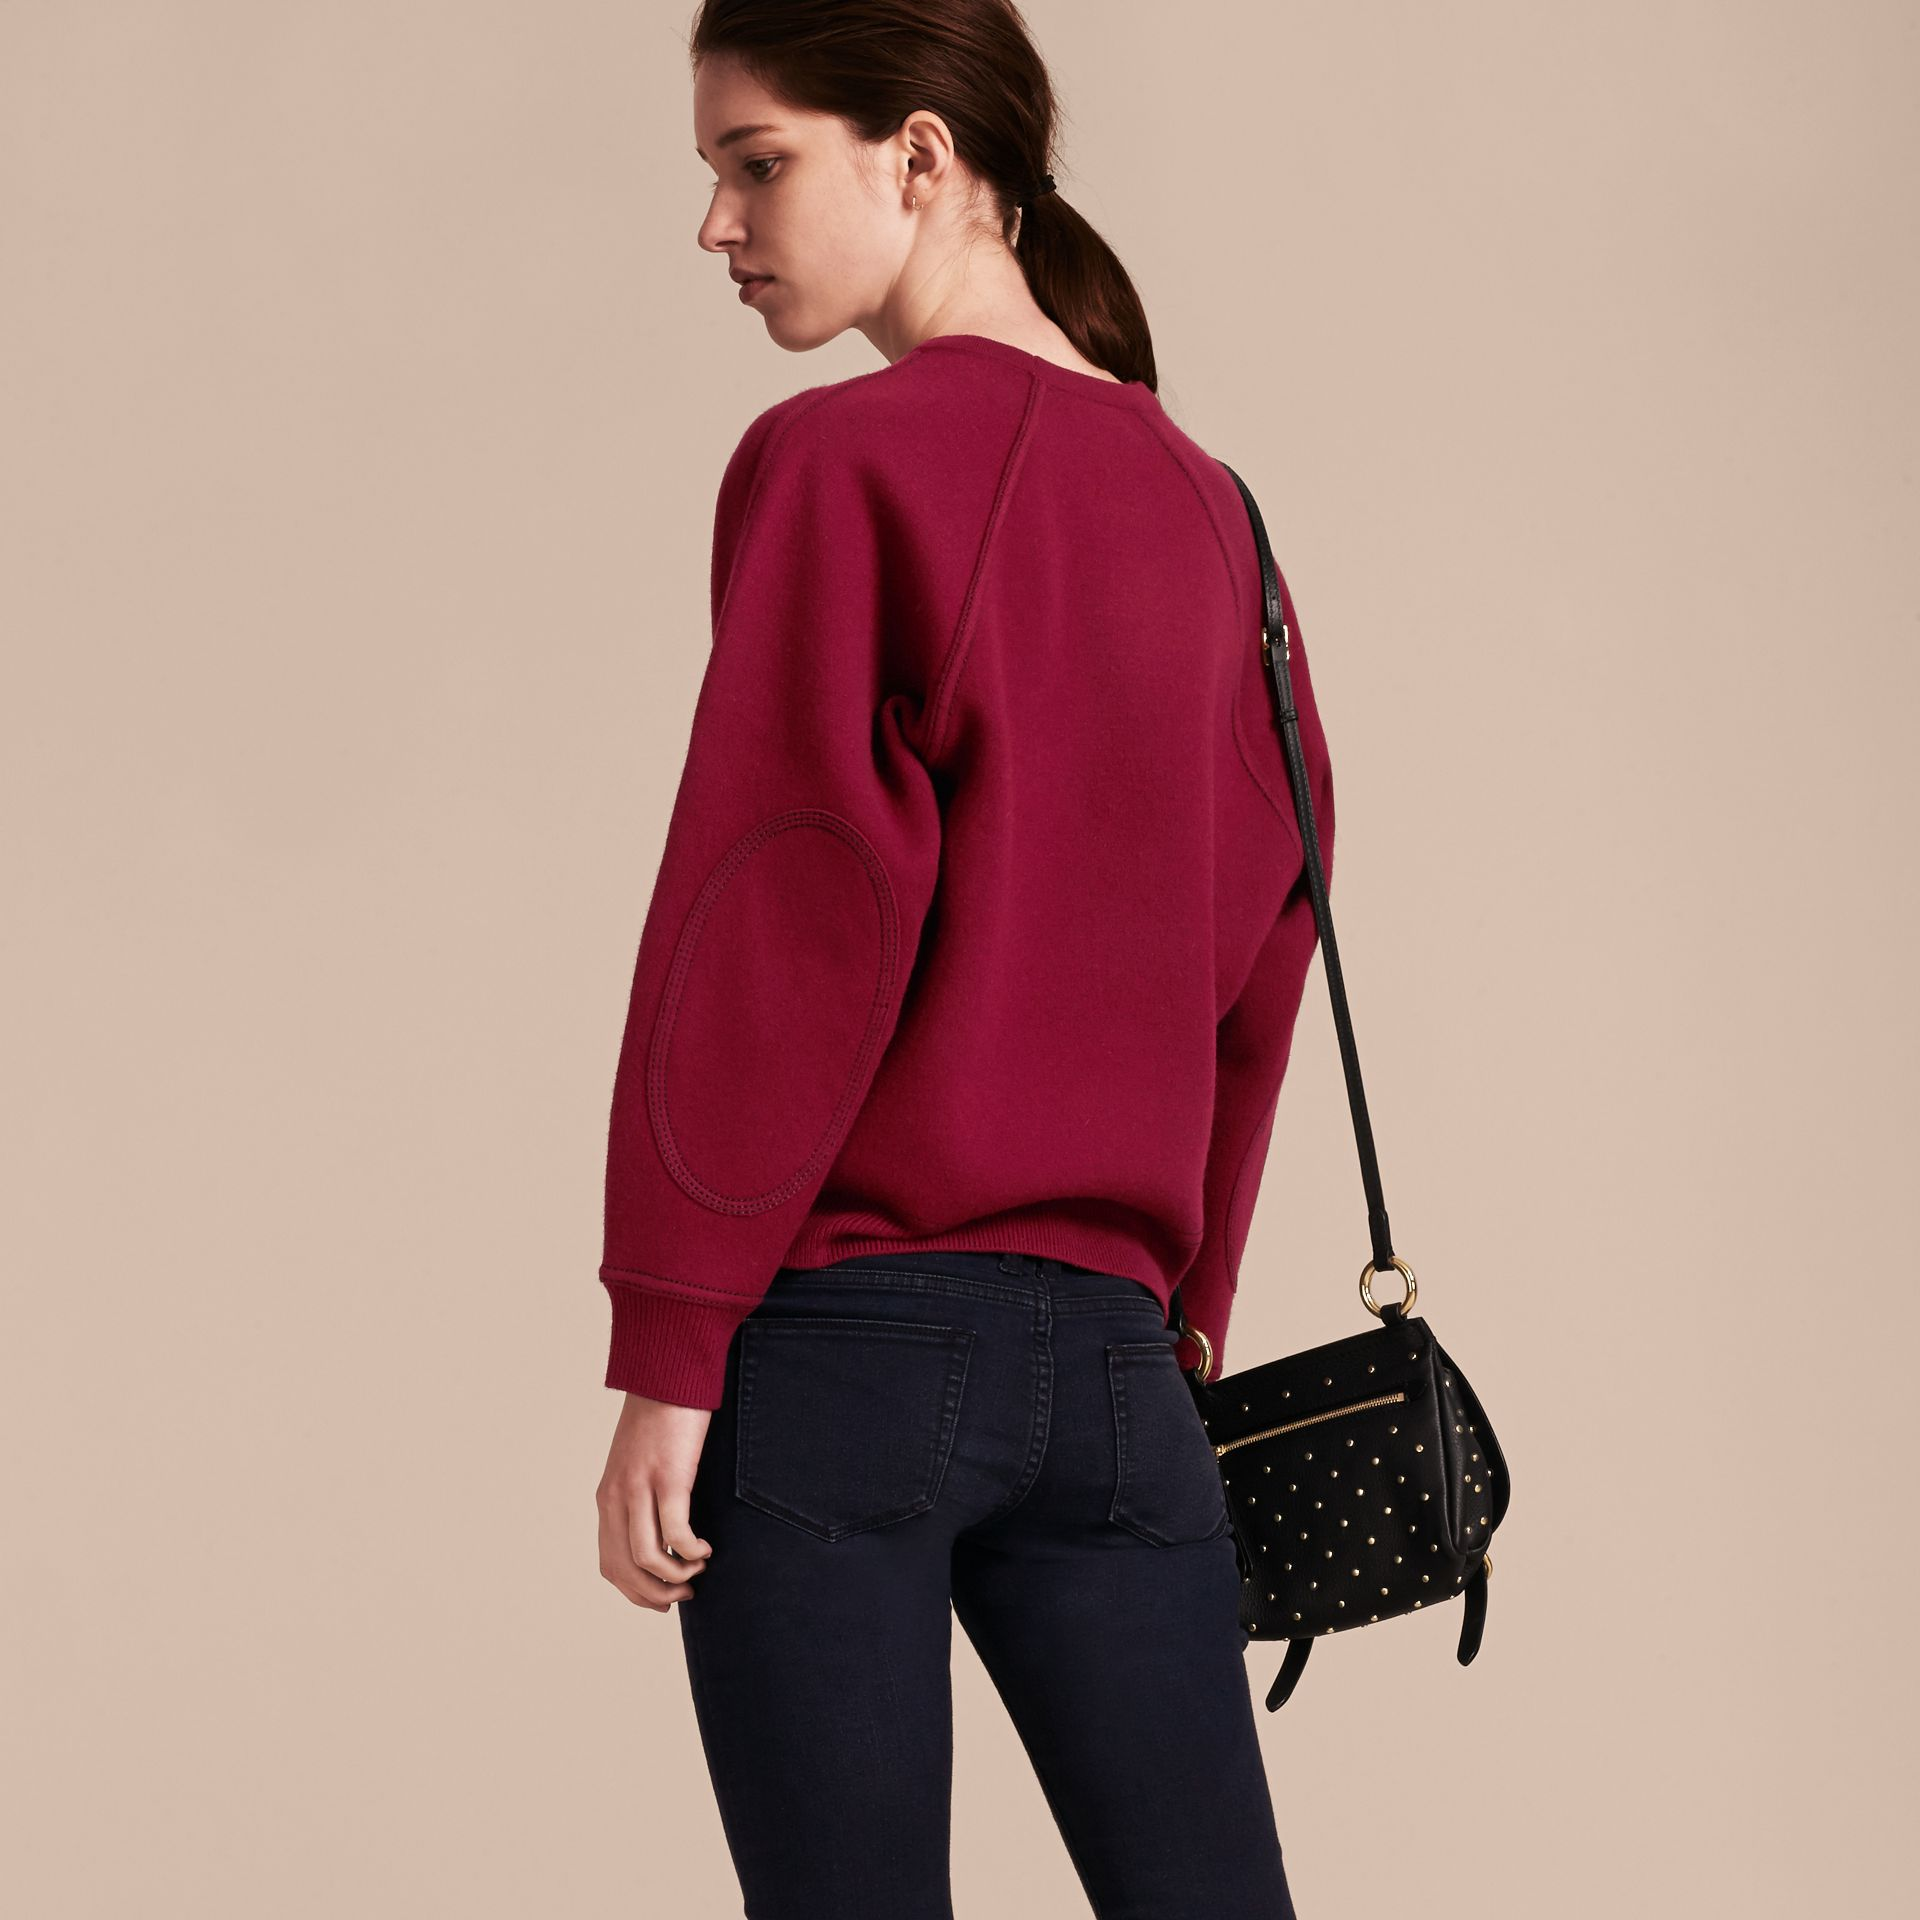 Topstitch Detail Wool Cashmere Blend Sweater in Burgundy - Women | Burberry Singapore - gallery image 3